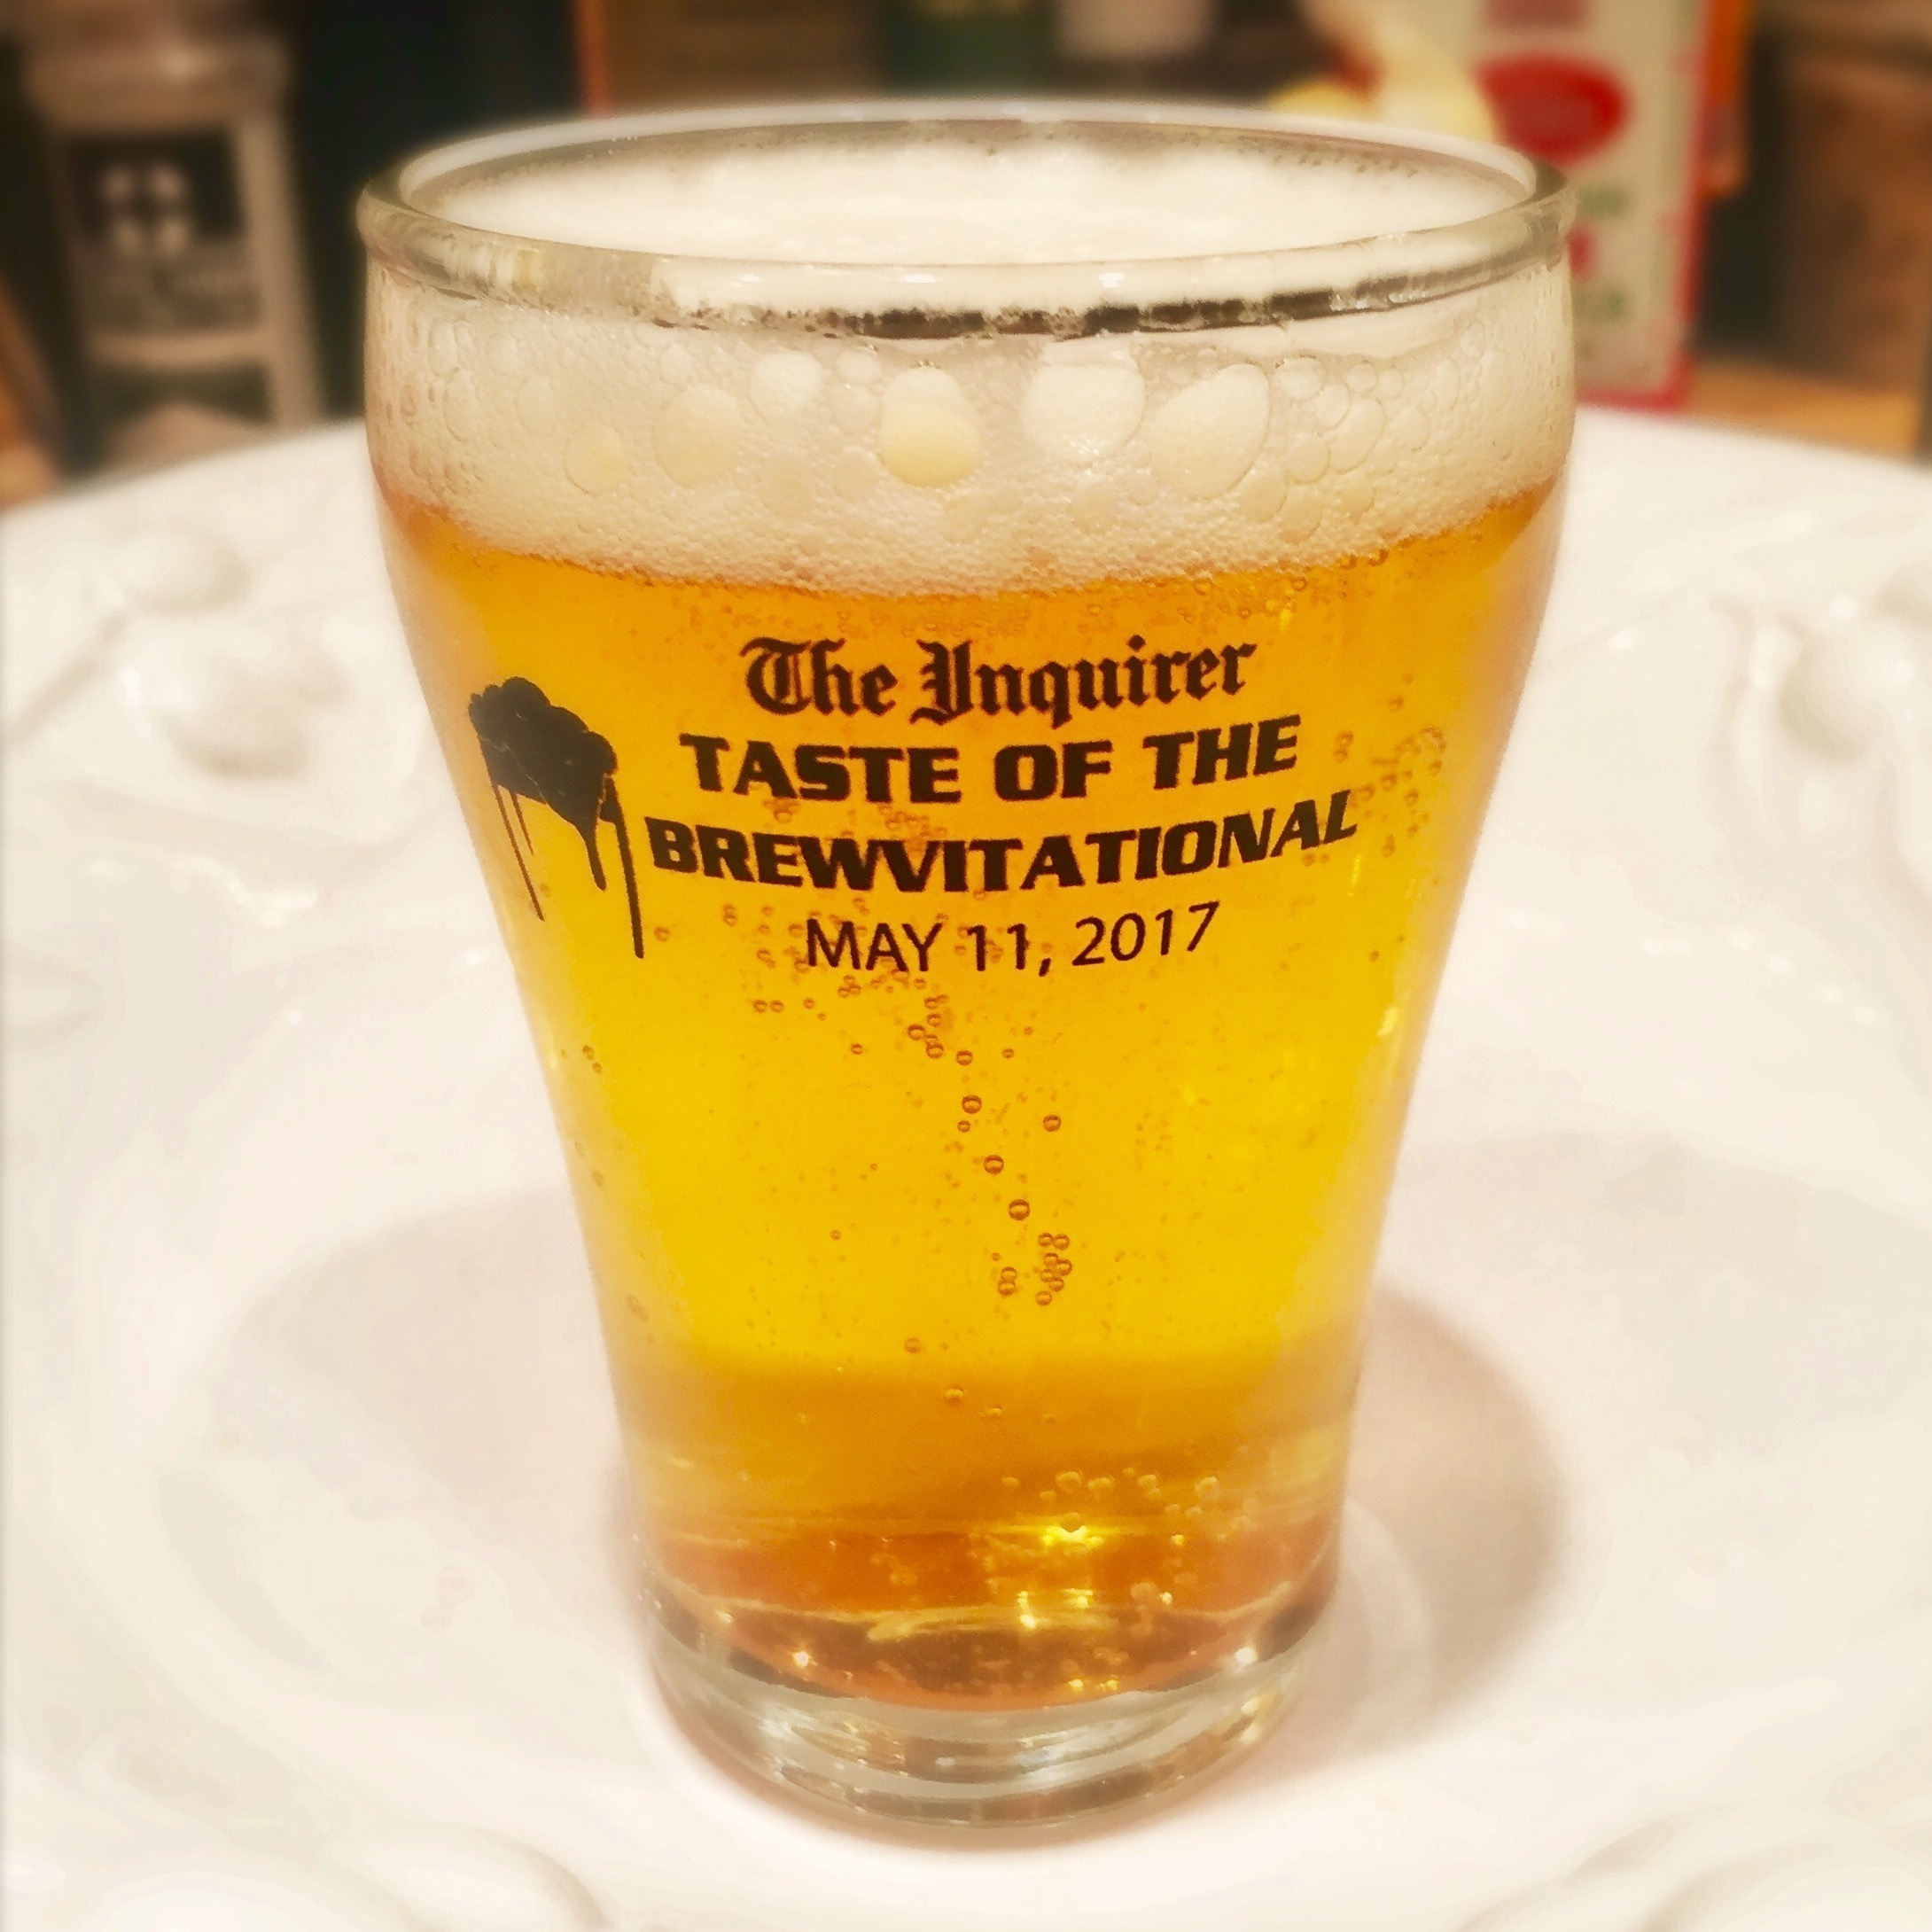 Brewvi swag: mini beer glass for tasting the 50-plus beers featured at the 2017 Taste of the Brewvitational.